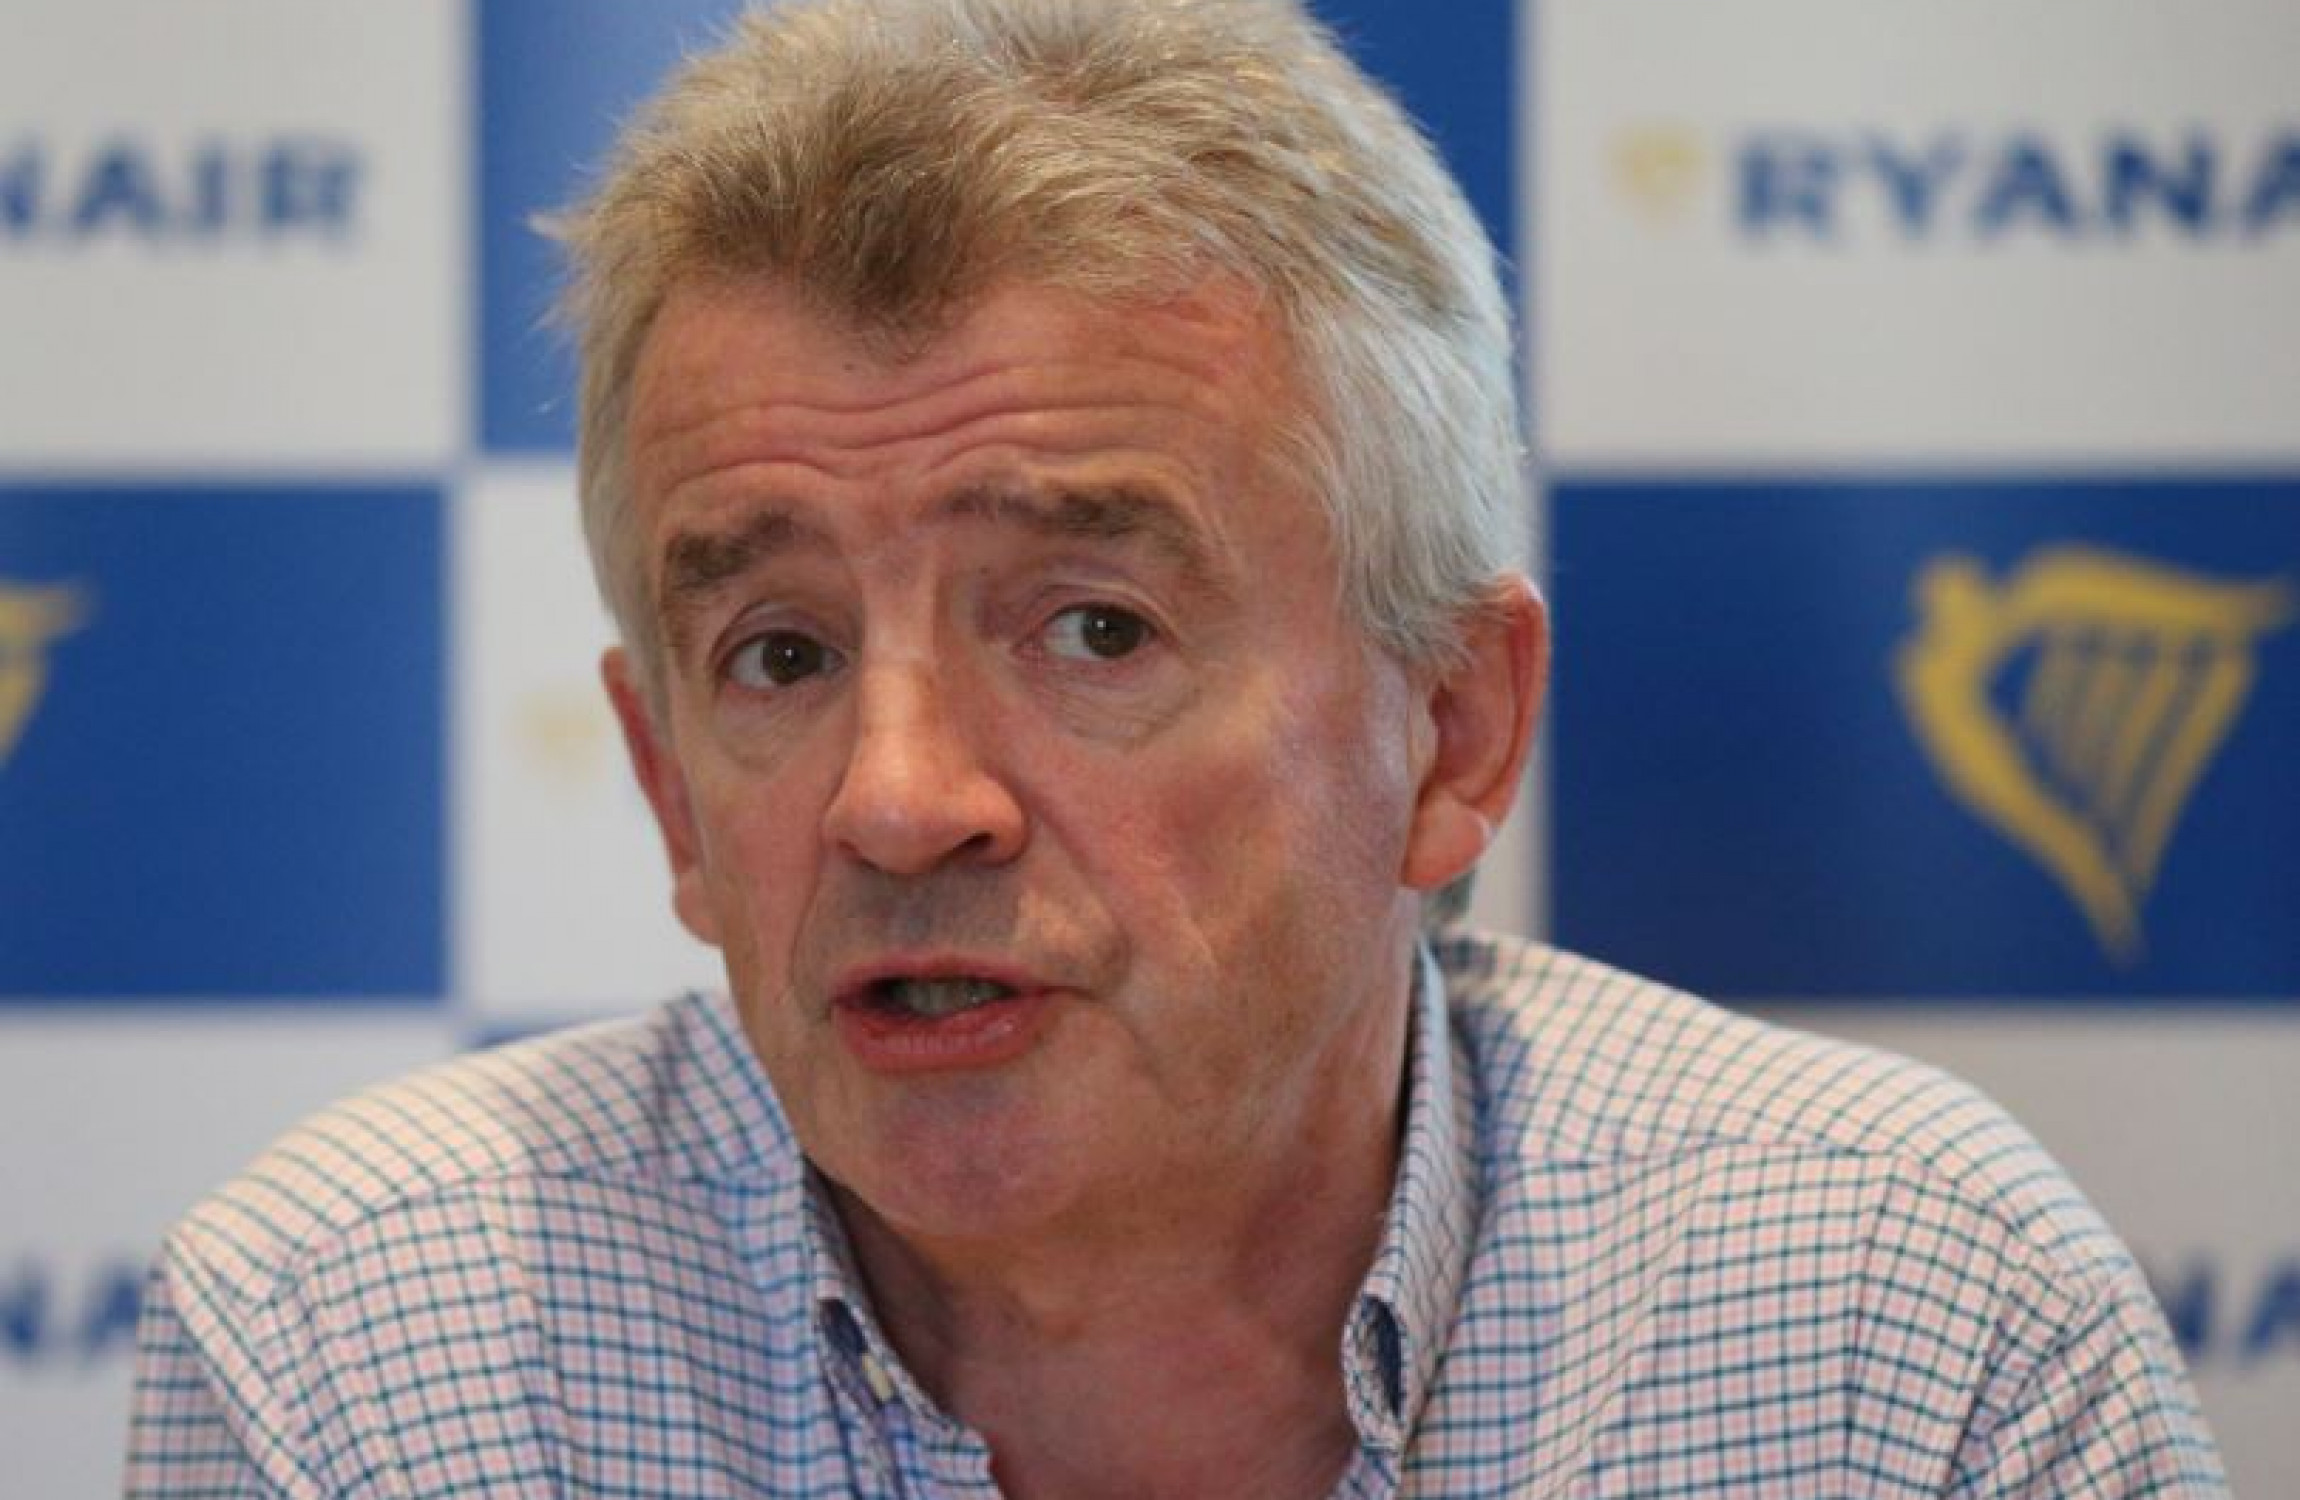 Ryanair cancelling '40 to 50 flights a day' for six weeks